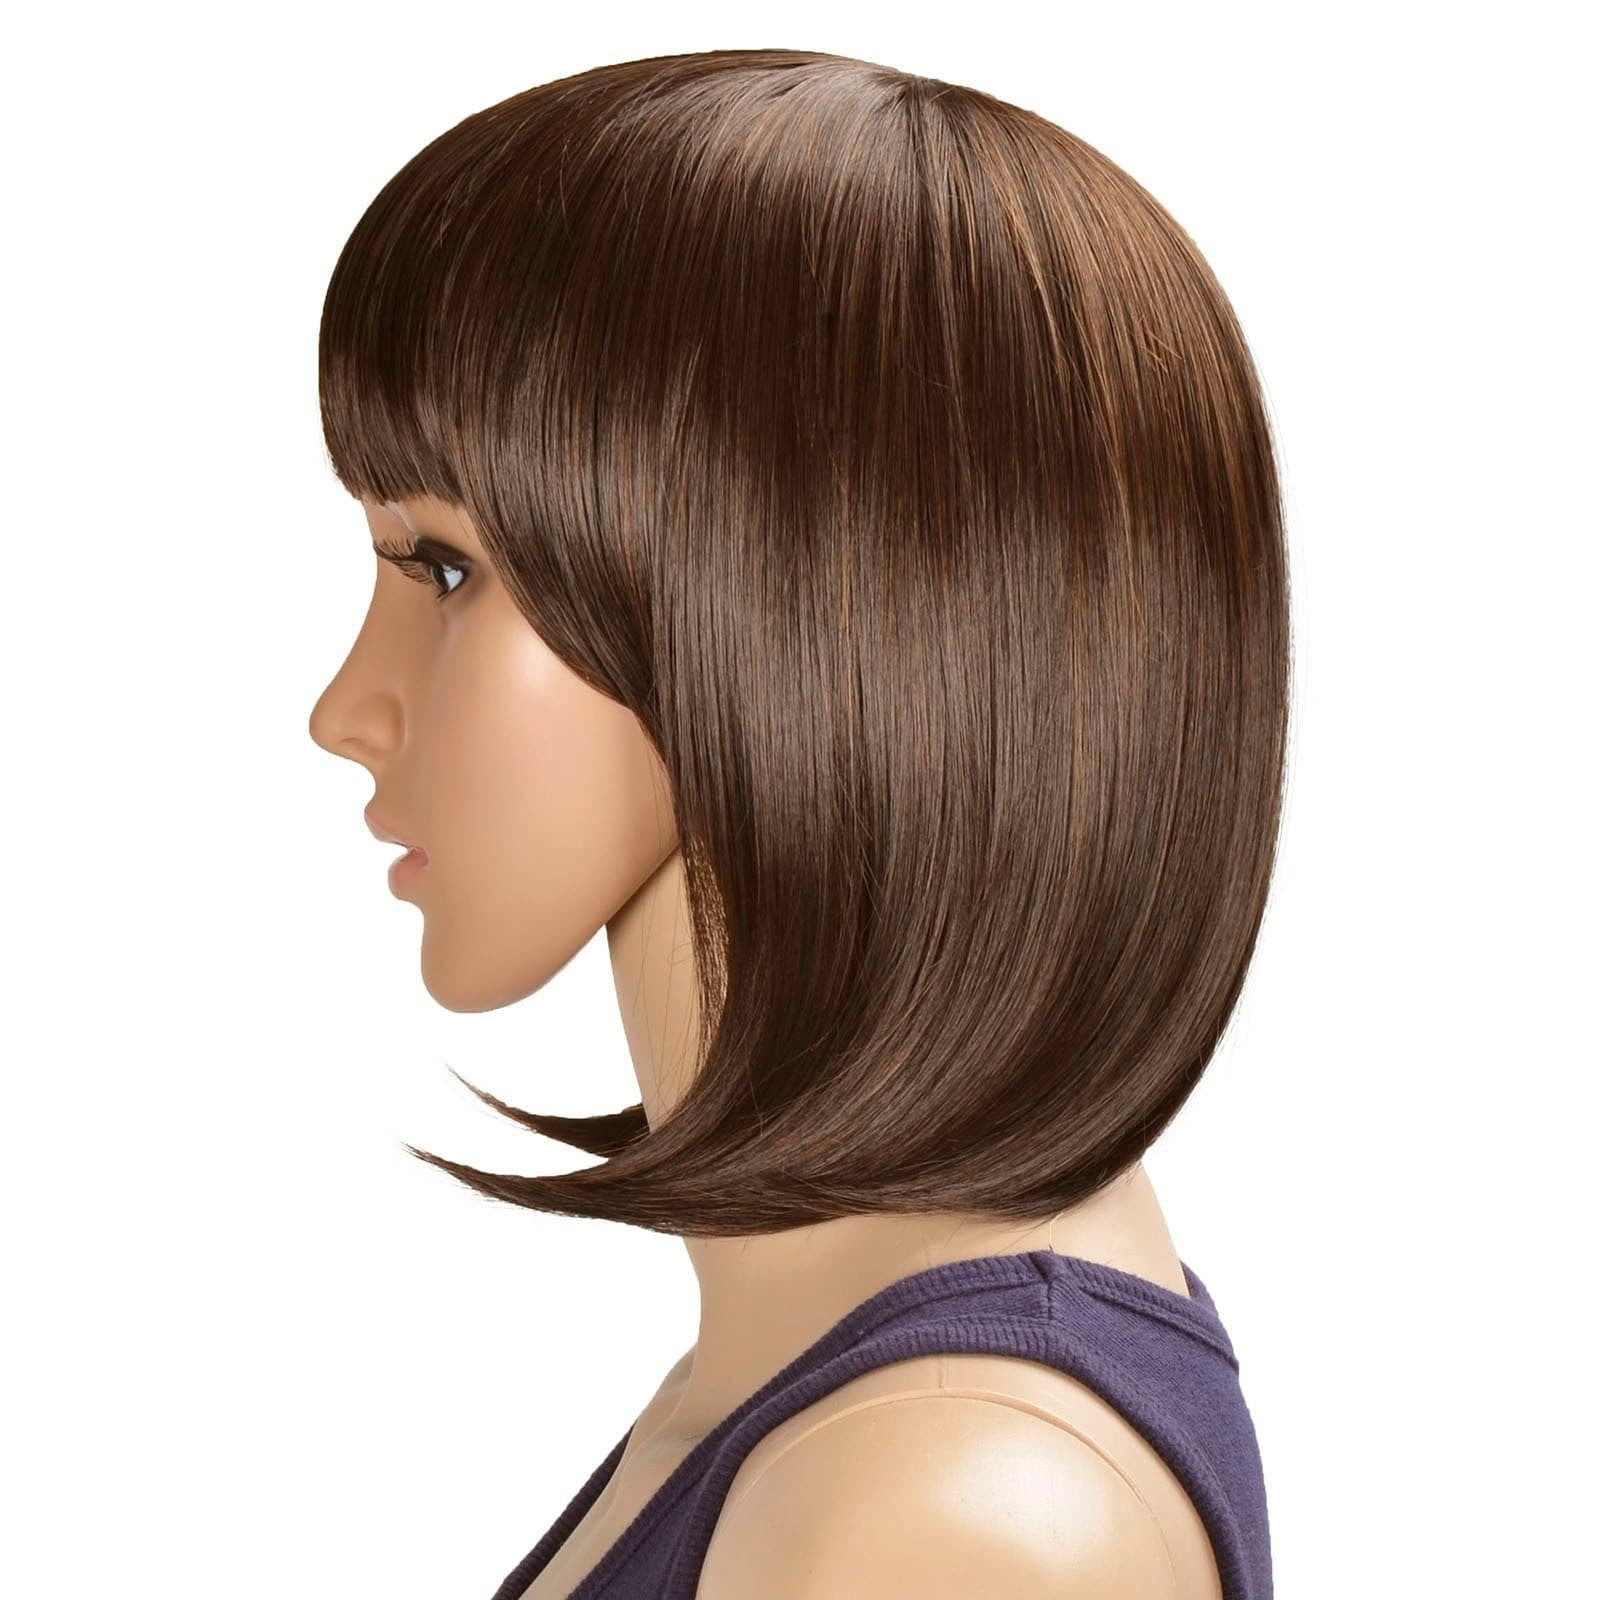 a94862da49a Shop Simplicity Women s Short Curly Costume Party Wigs - Free Shipping On  Orders Over  45 - Overstock - 17779673